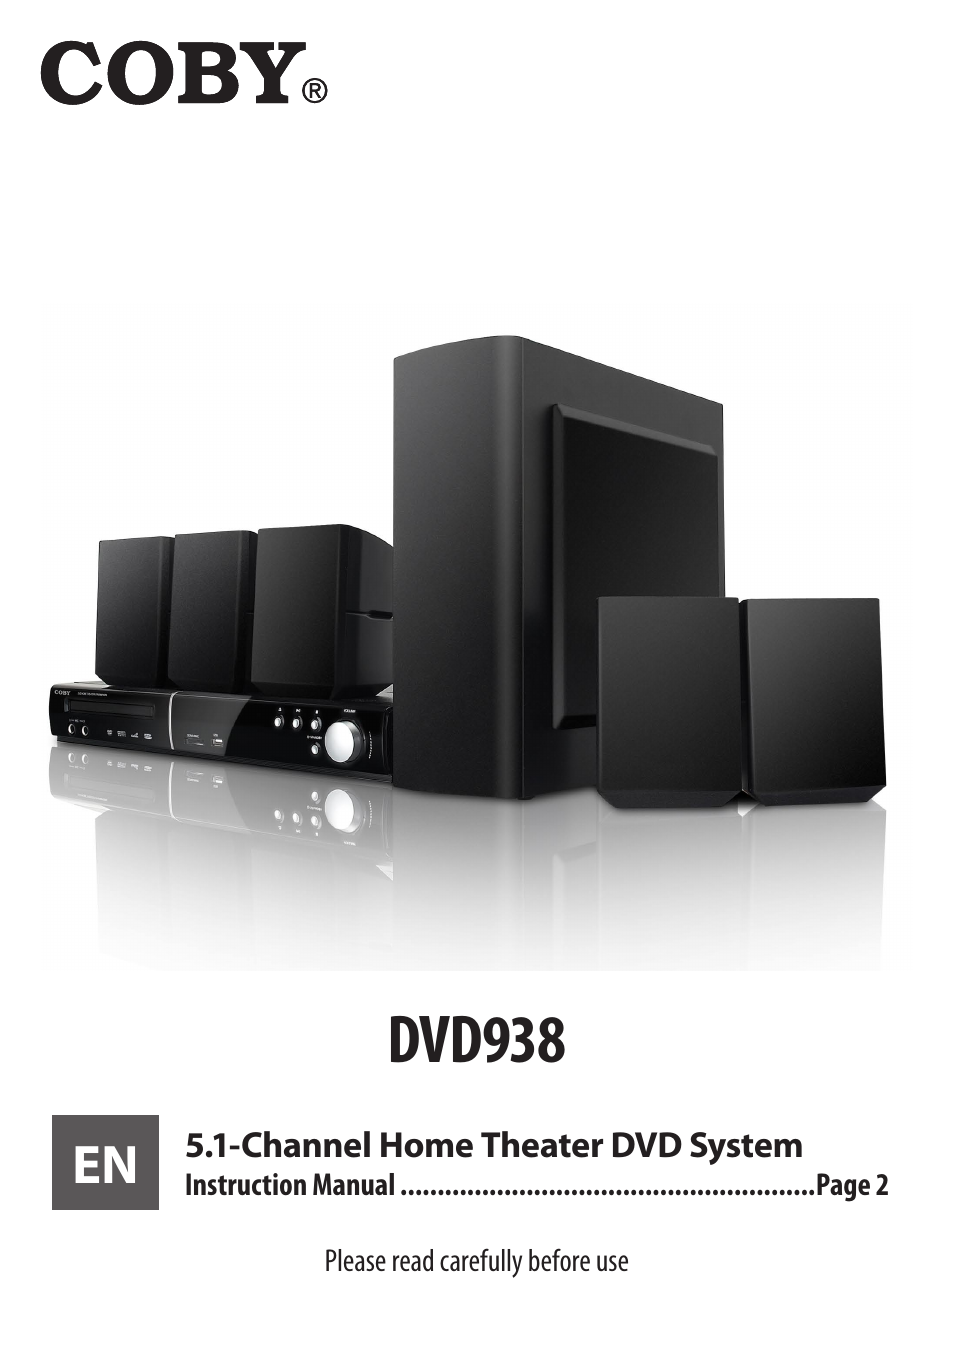 COBY electronic 5.1 Channel Home Theater DVD System DVD938 User Manual   60  pages